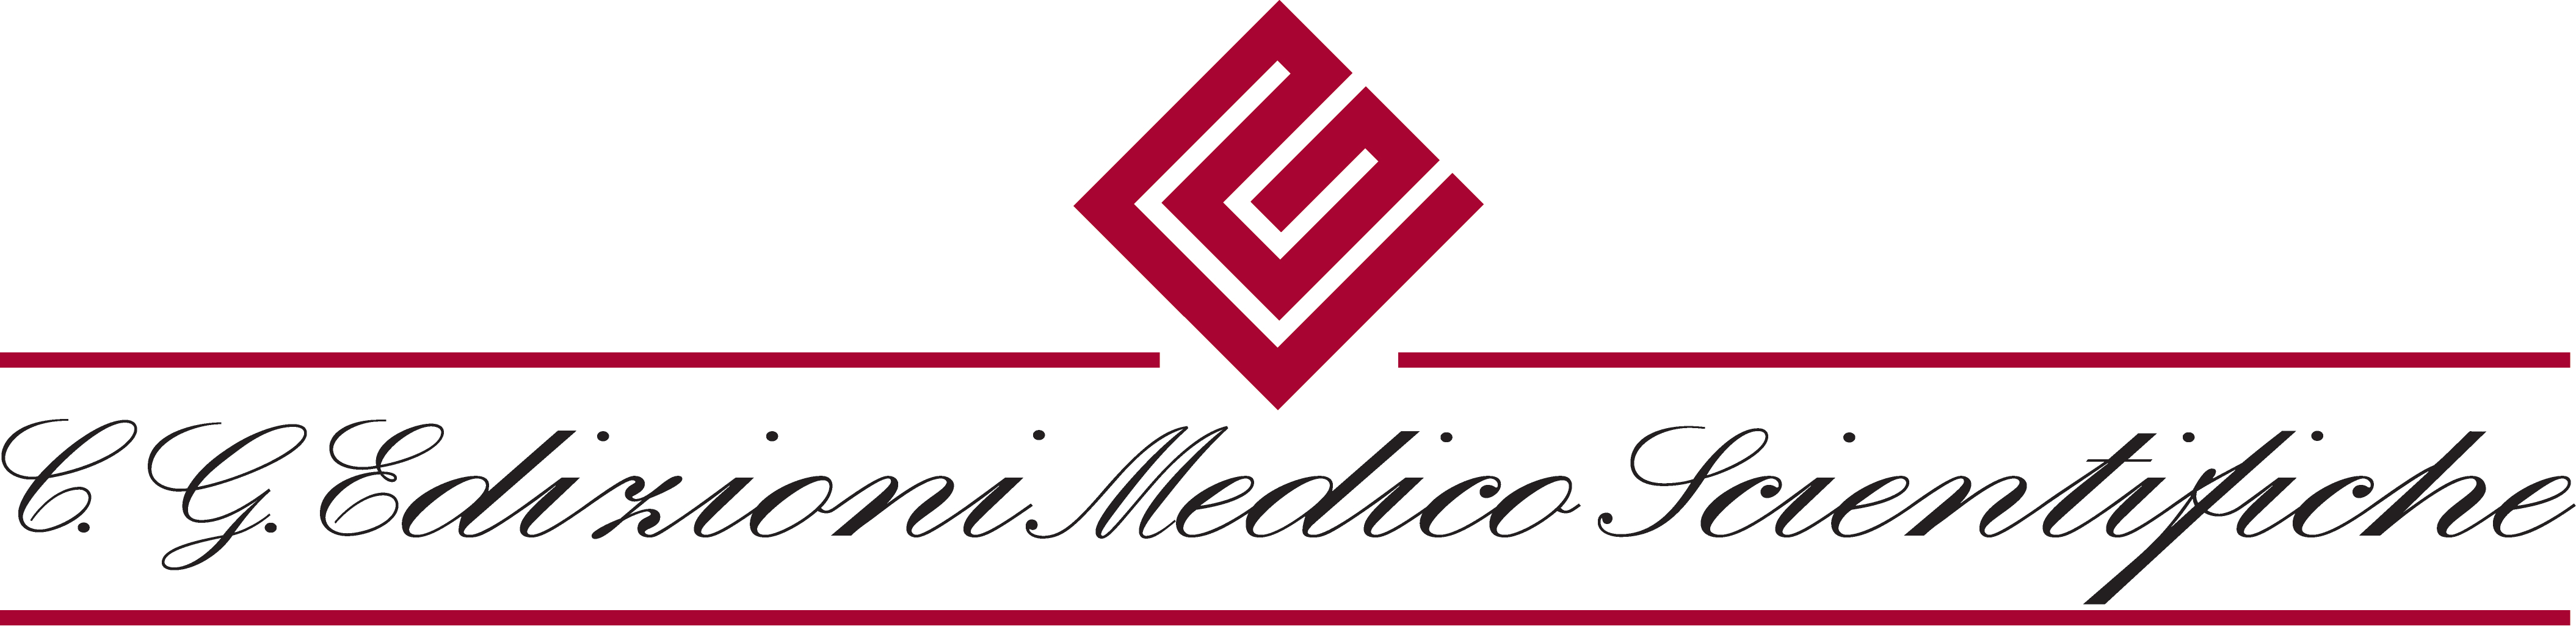 review C.G. Edizioni Medico Scientifiche